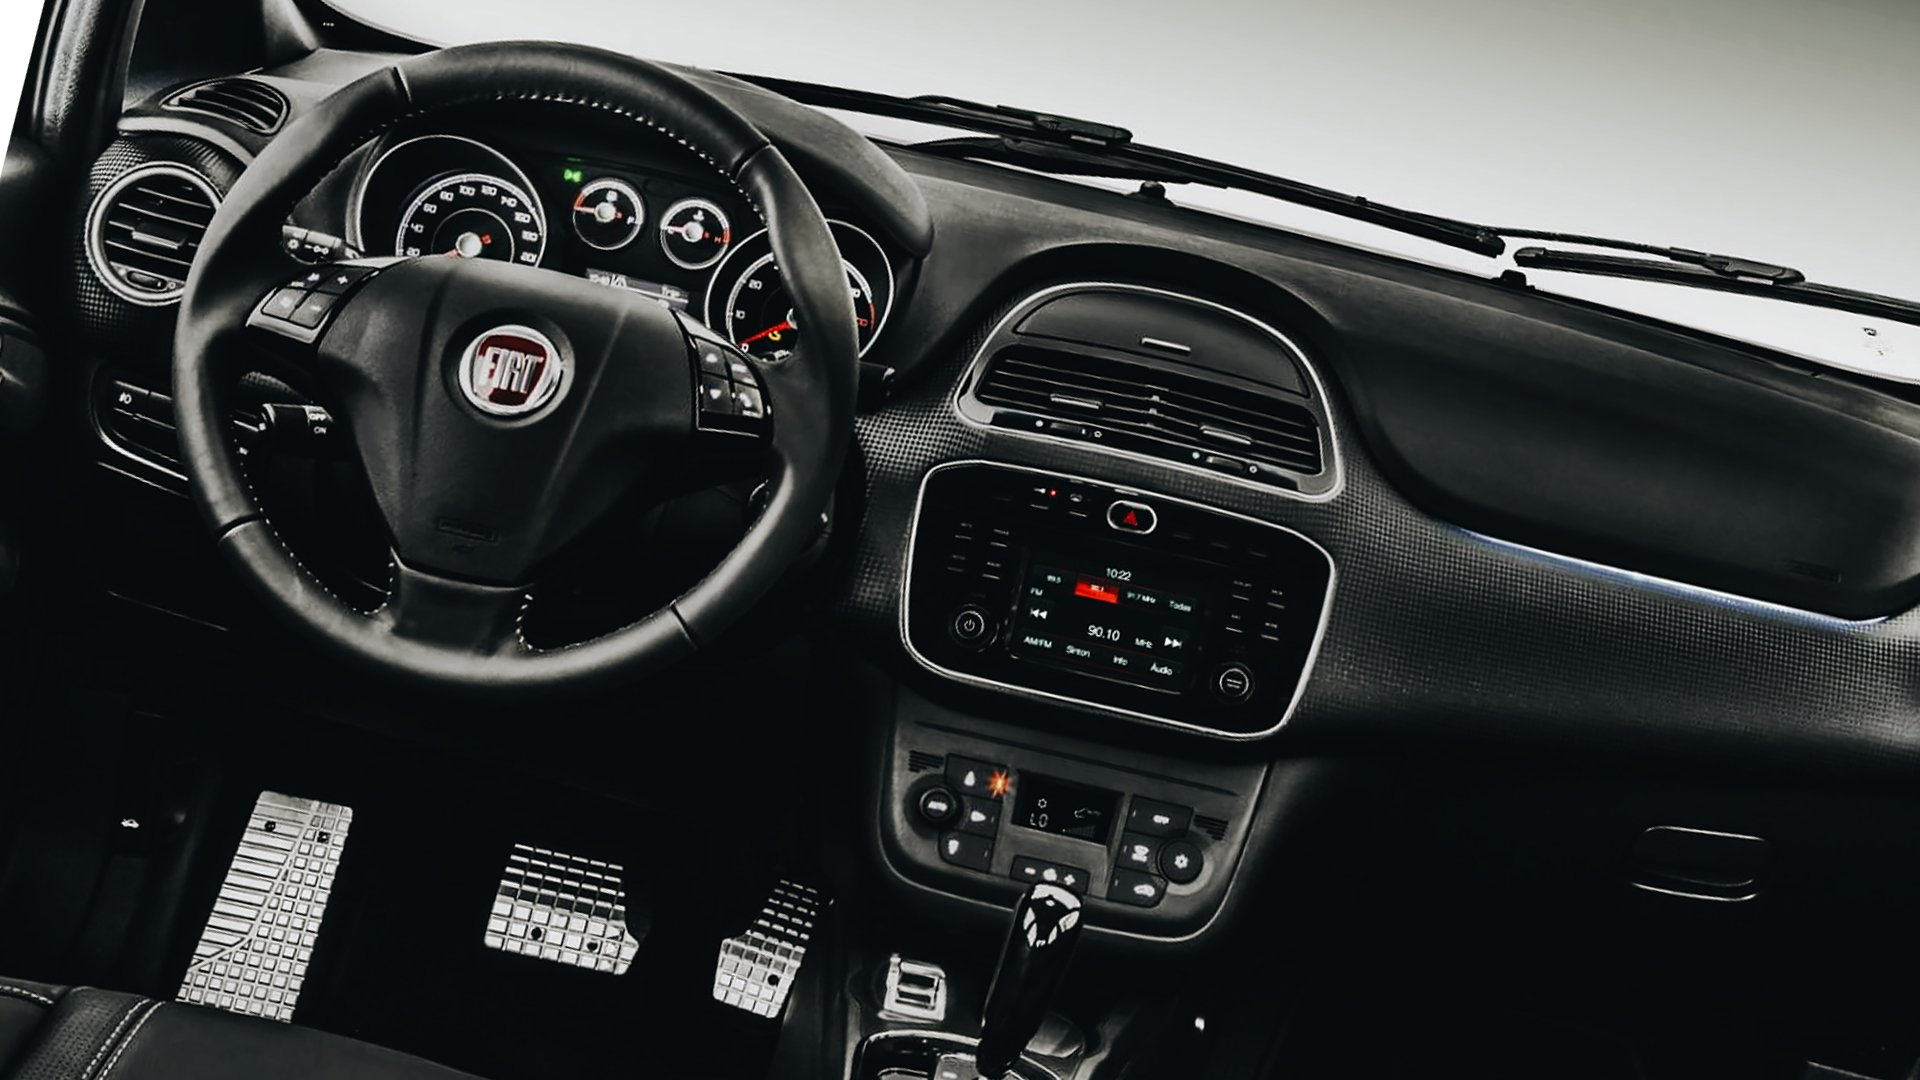 Dashboard Fiat Toro 2019 HD